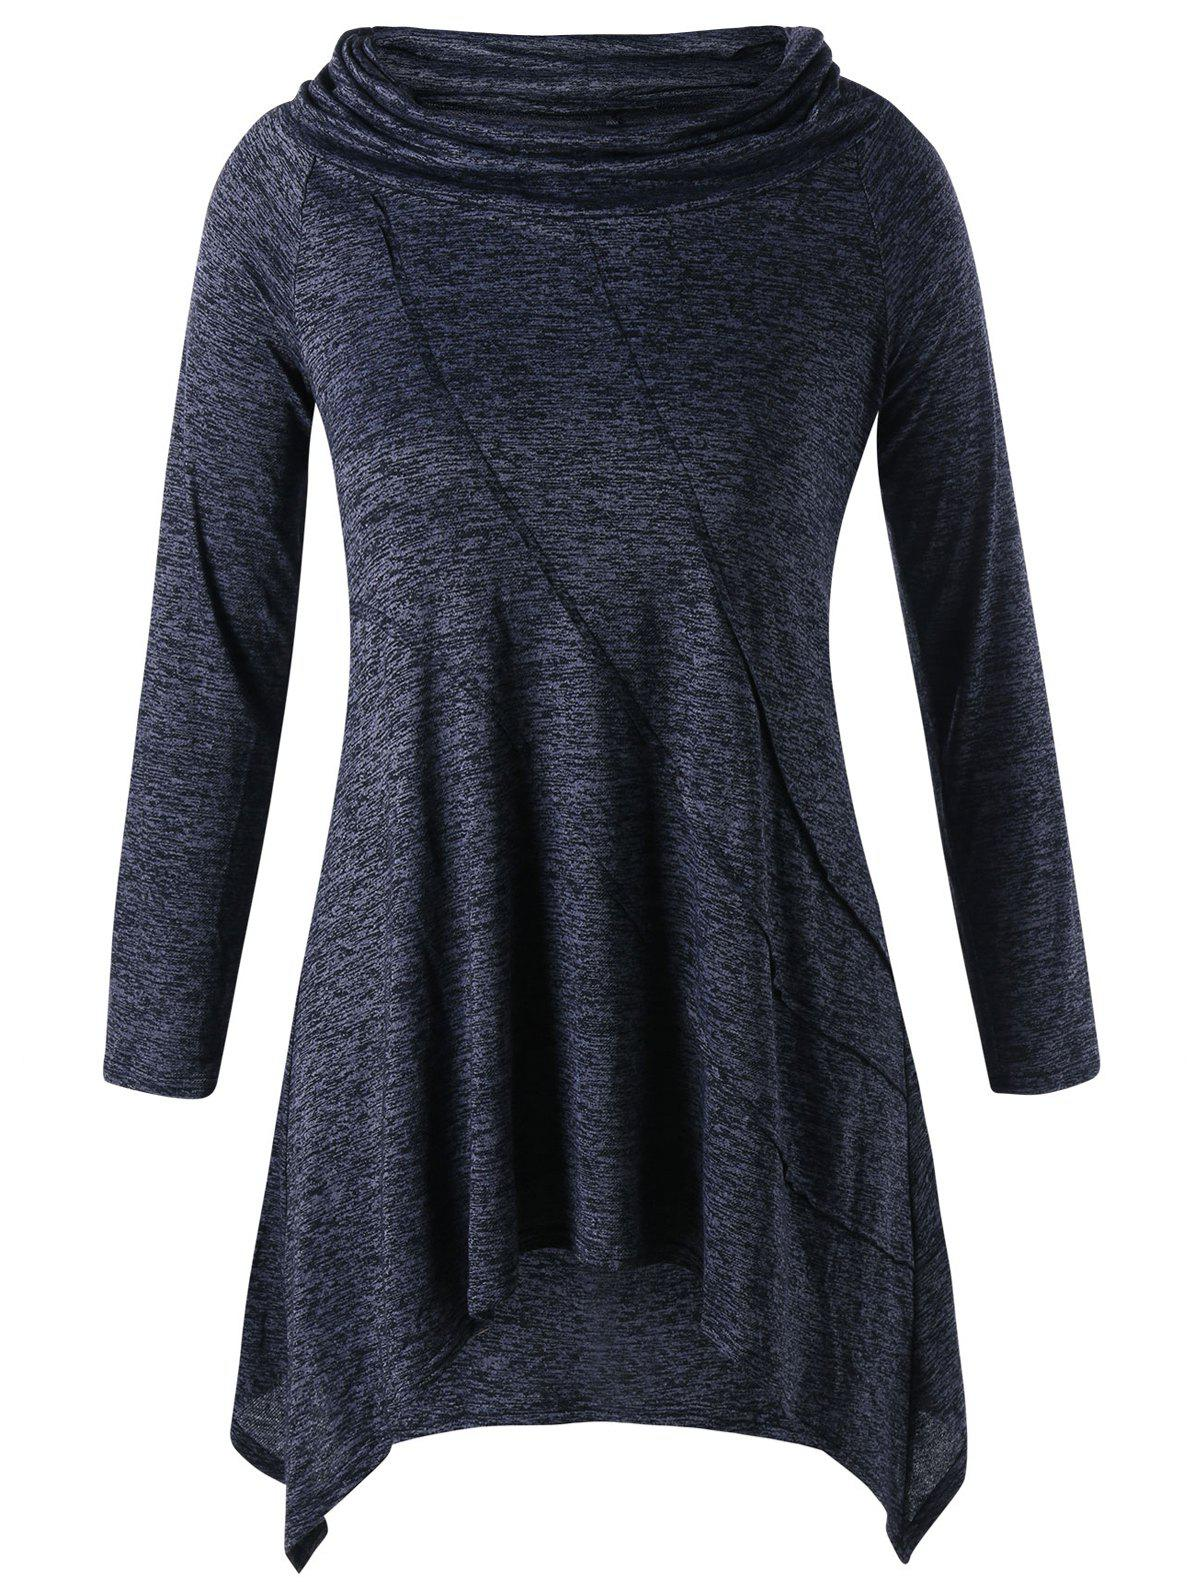 asymmetric plus size long sleeve tunic top